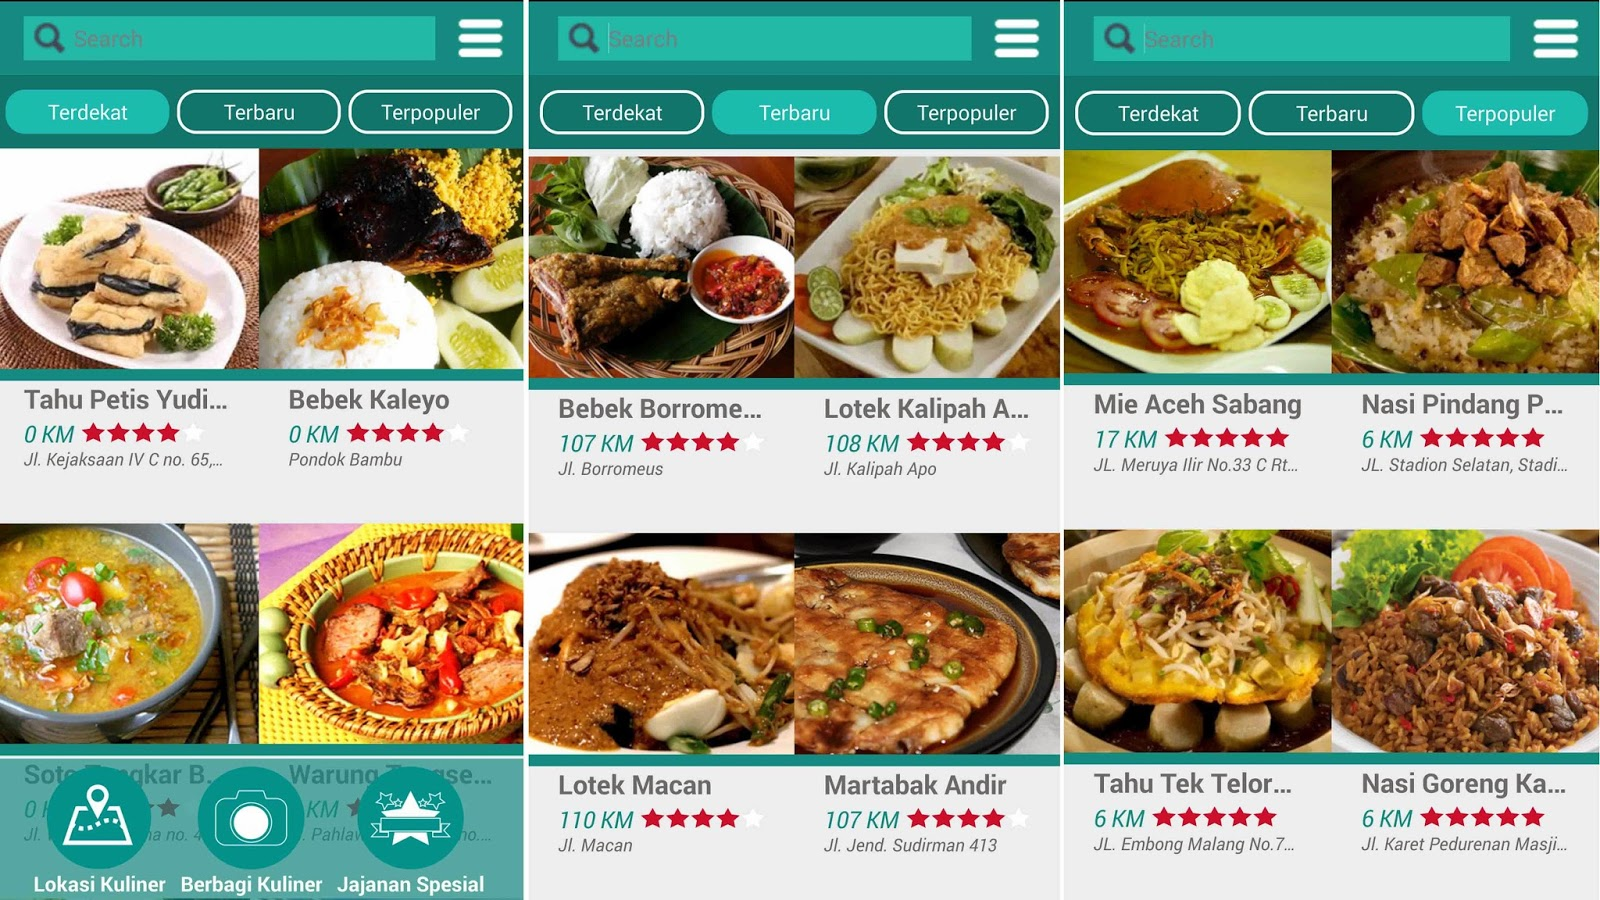 the hungry doctor indonesian food and travel blogger based in rh thehungrydoctor net